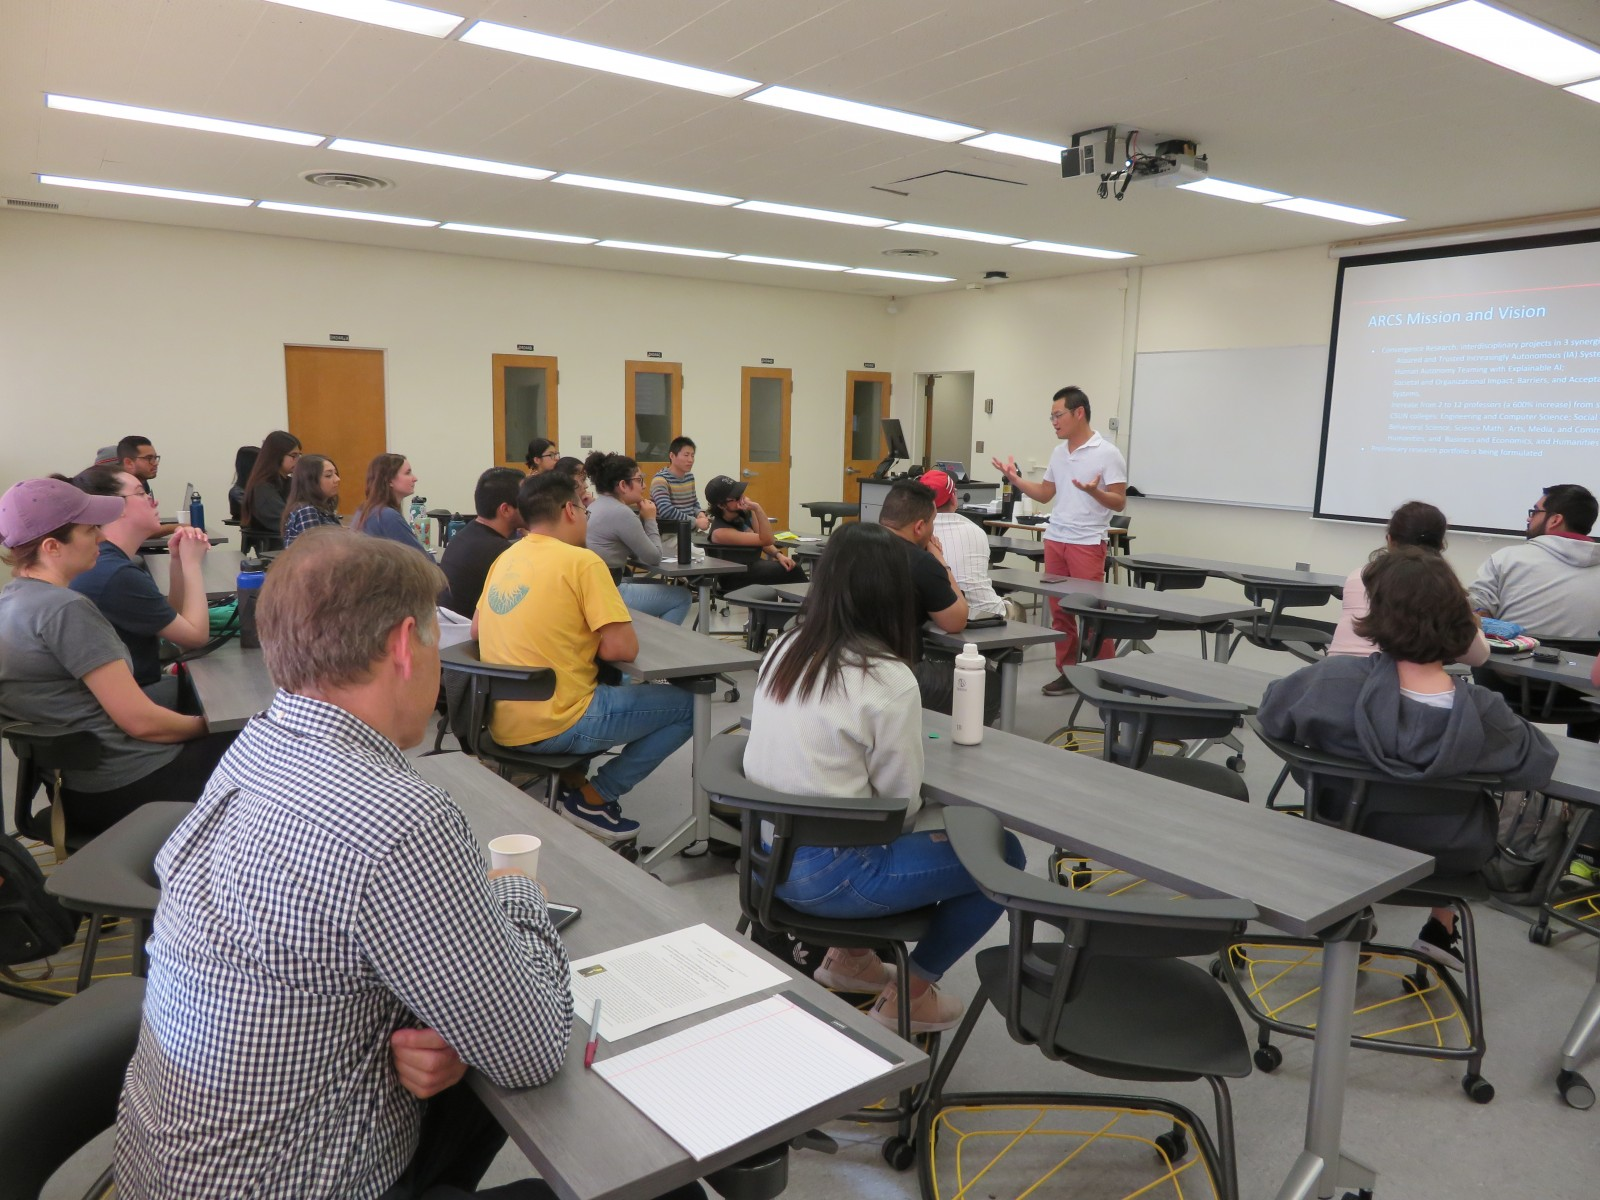 Students at our multi-disciplinary seminar on Jan. 31st with Dr. Nhut Tan Ho from Cal State University, Northridge